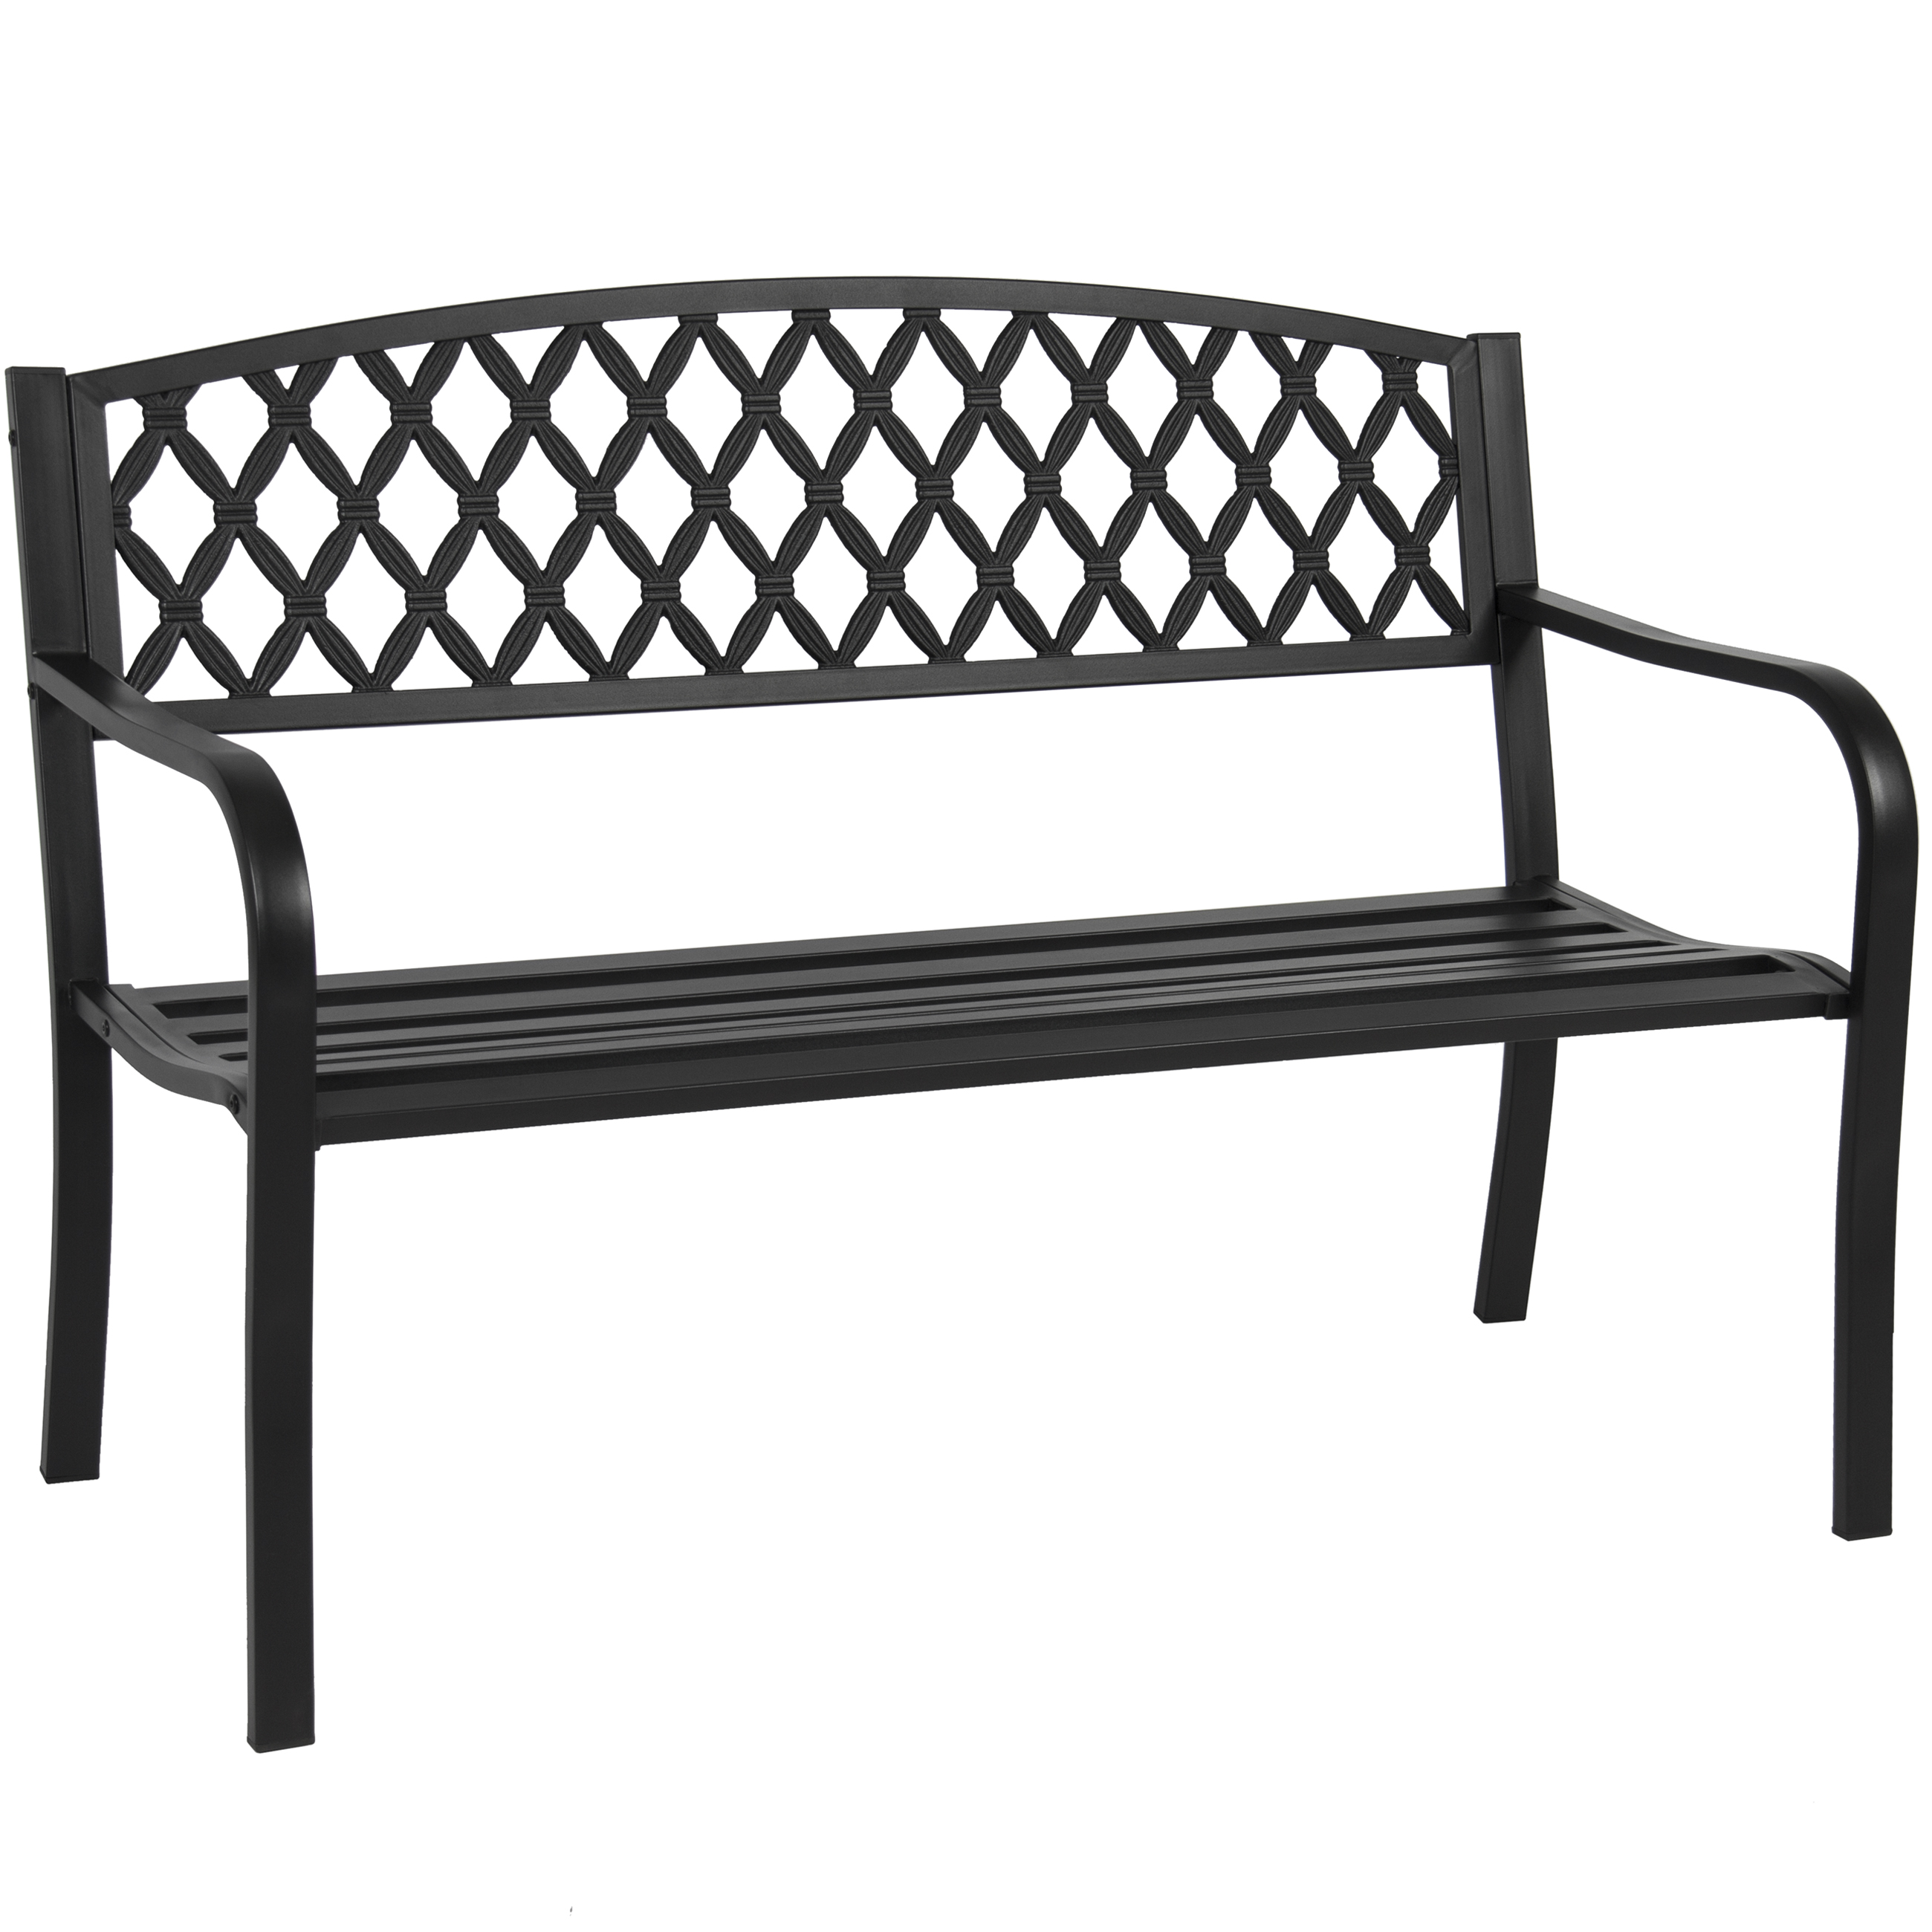 Best Choice Products 50in Steel Outdoor Park Bench Chair Yard Furniture W Cross Design Backrest Slatted Seat For Backyard Garden Patio Porch Black